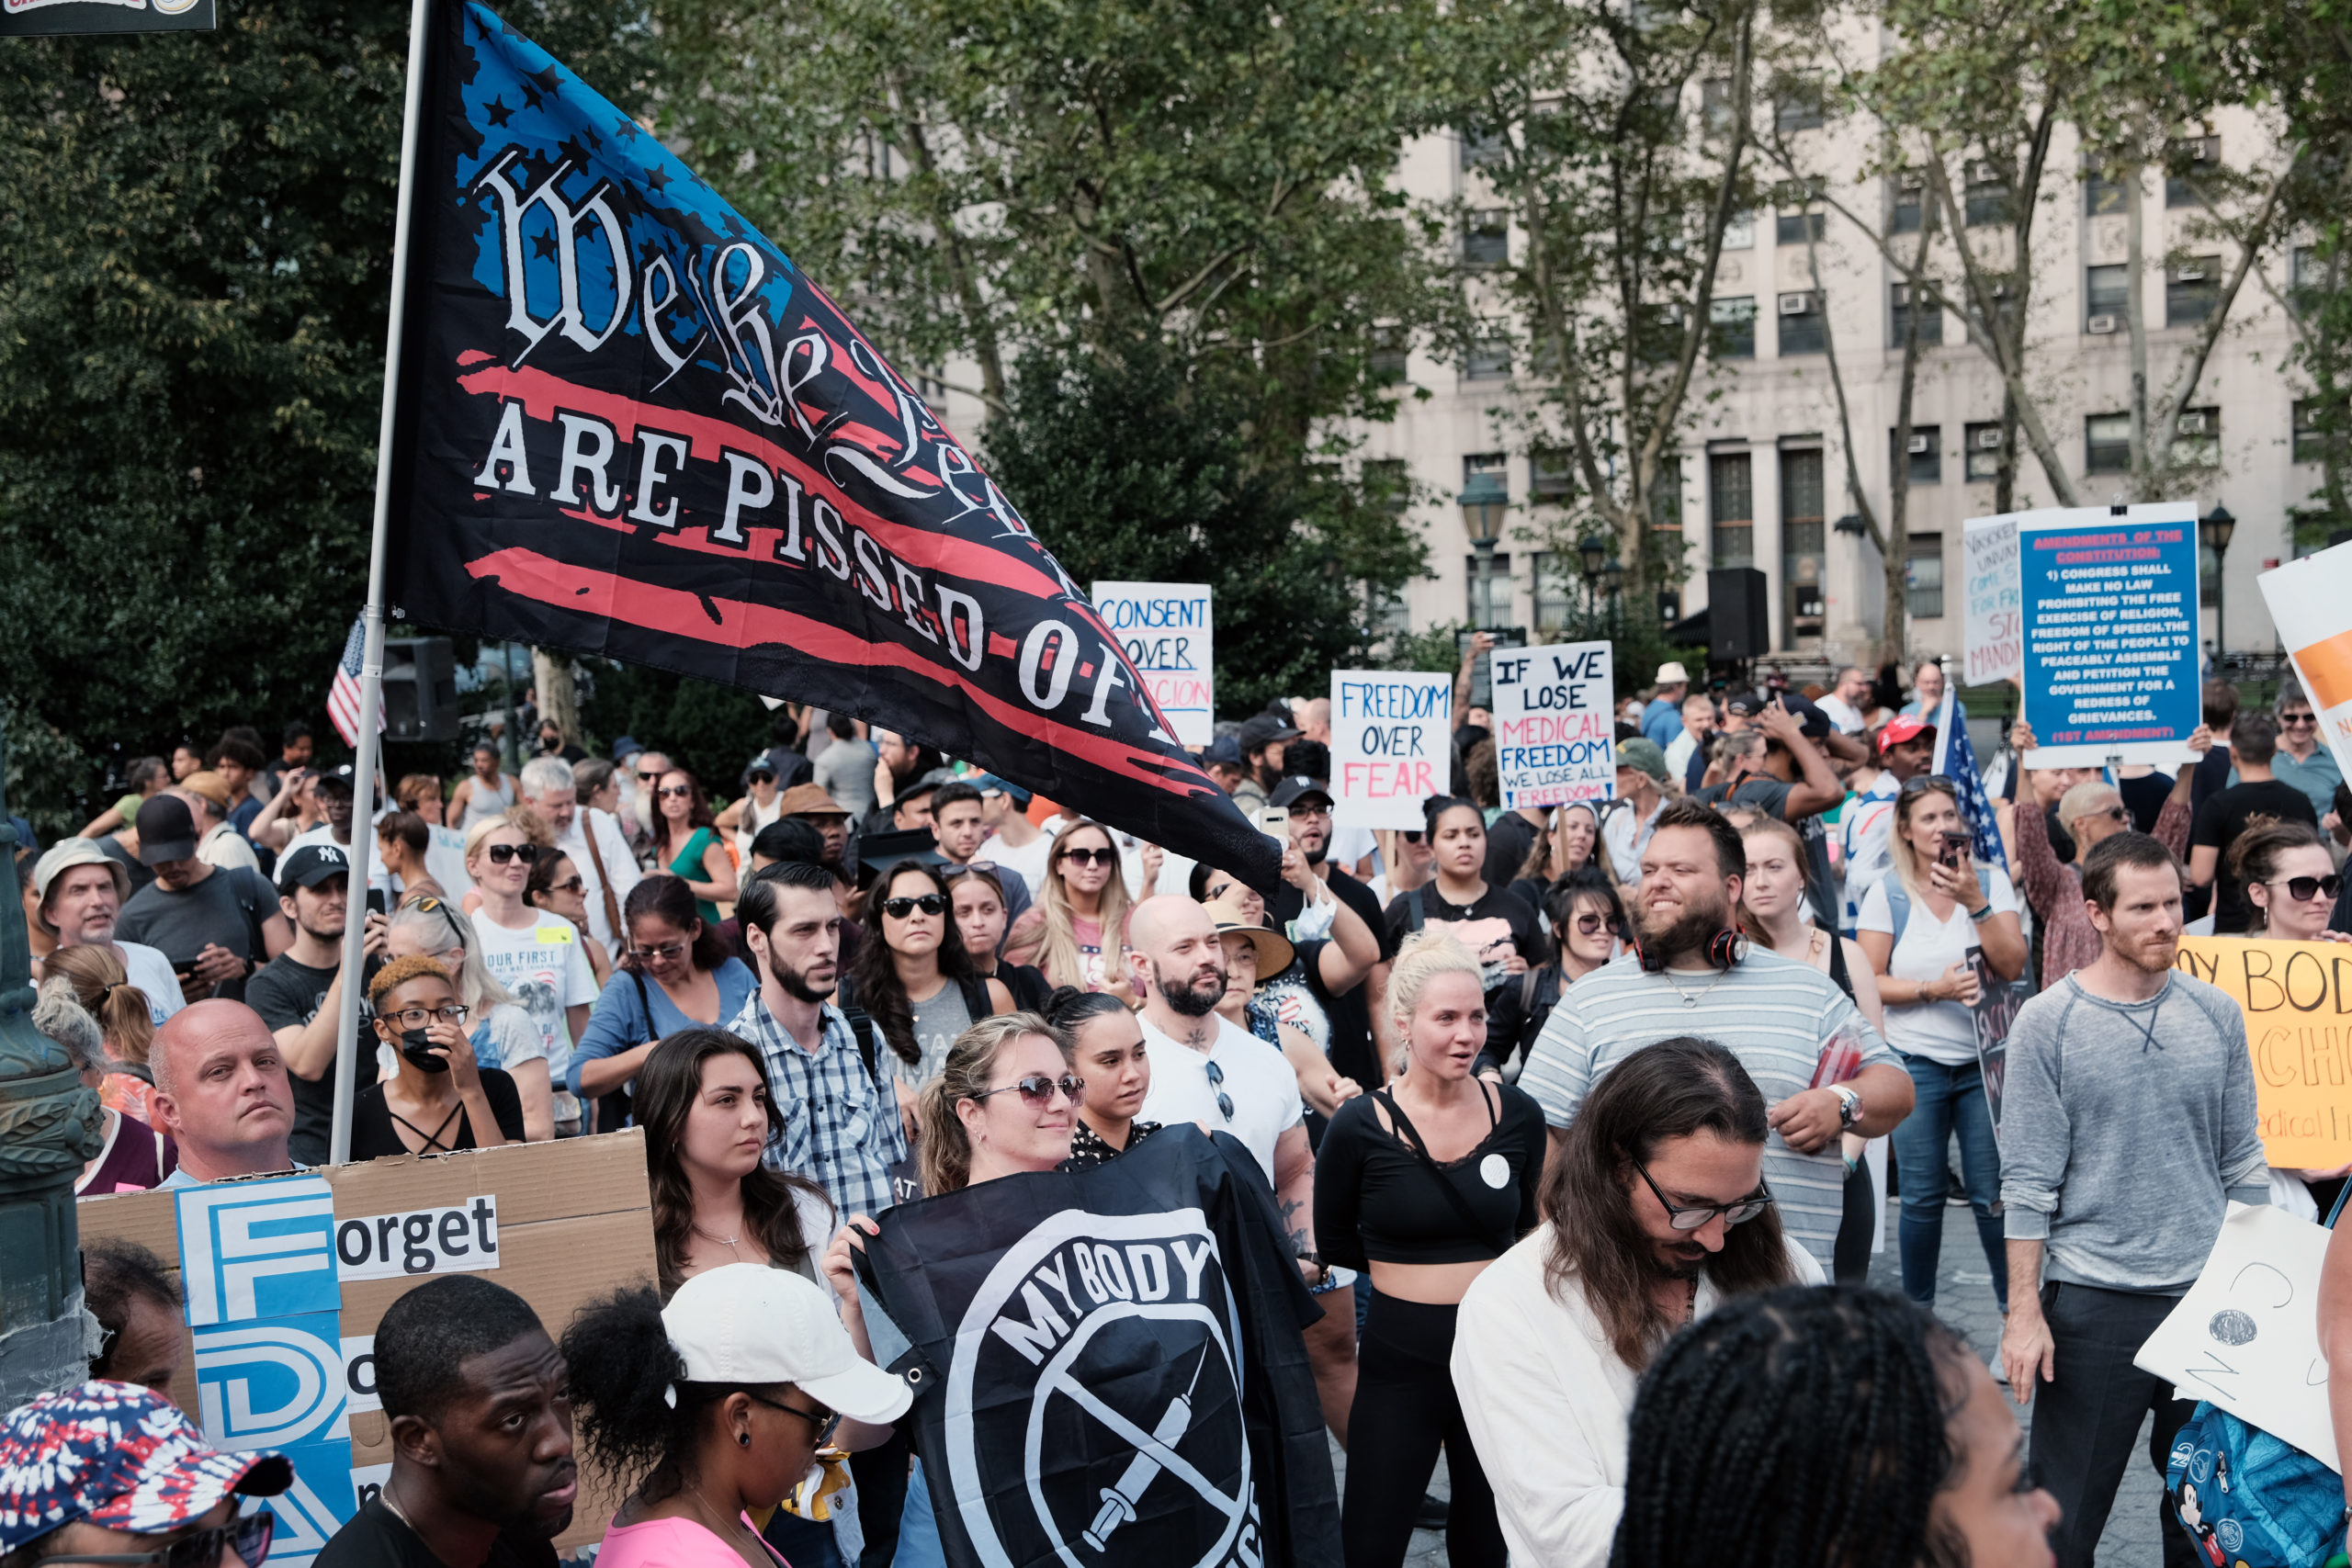 People participate in a rally and march against COVID-19 vaccine mandates on Monday in New York City. (Spencer Platt/Getty Images)